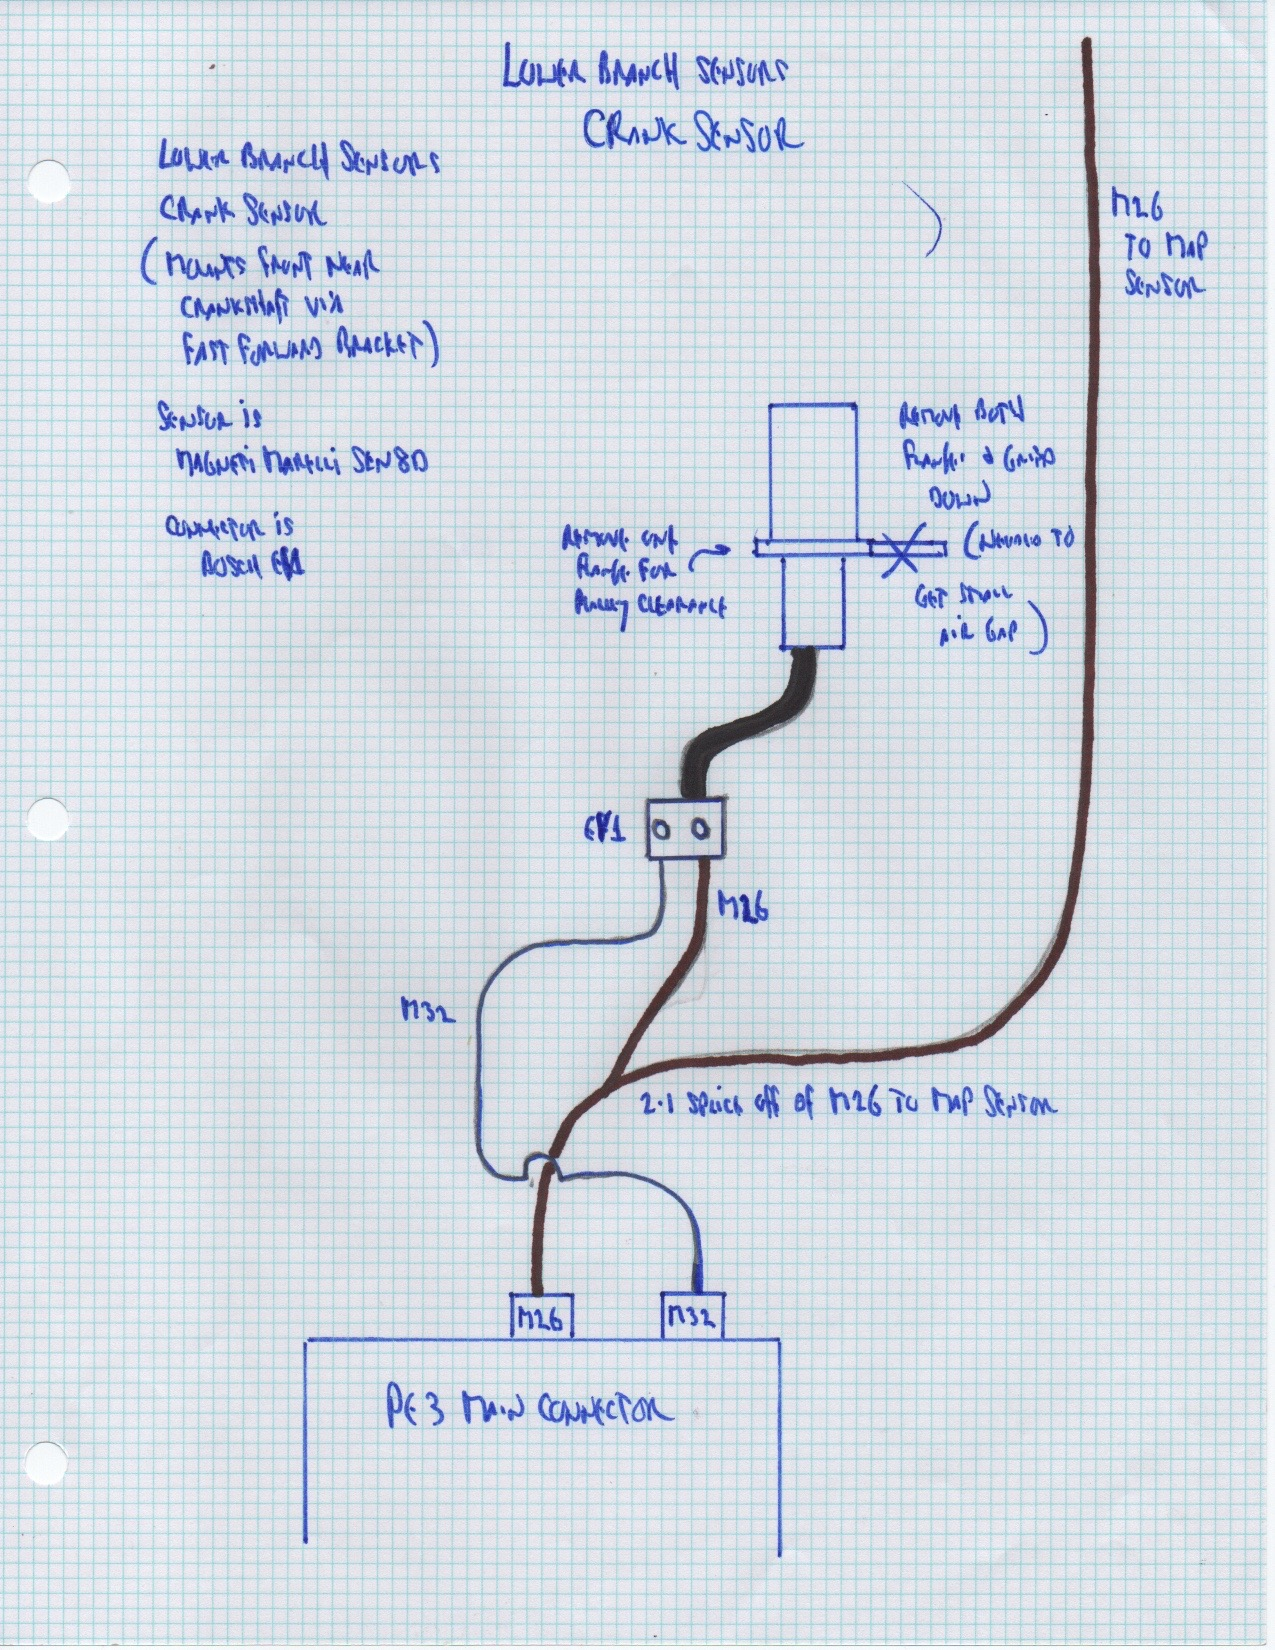 Crank Sensor Wiring Diagram 4ze1 Schematics Pick Up 2 4 Mass Air Flow On 1996 Nissan Sentra Engine Angle Trusted Diagrams Knock Position Placement